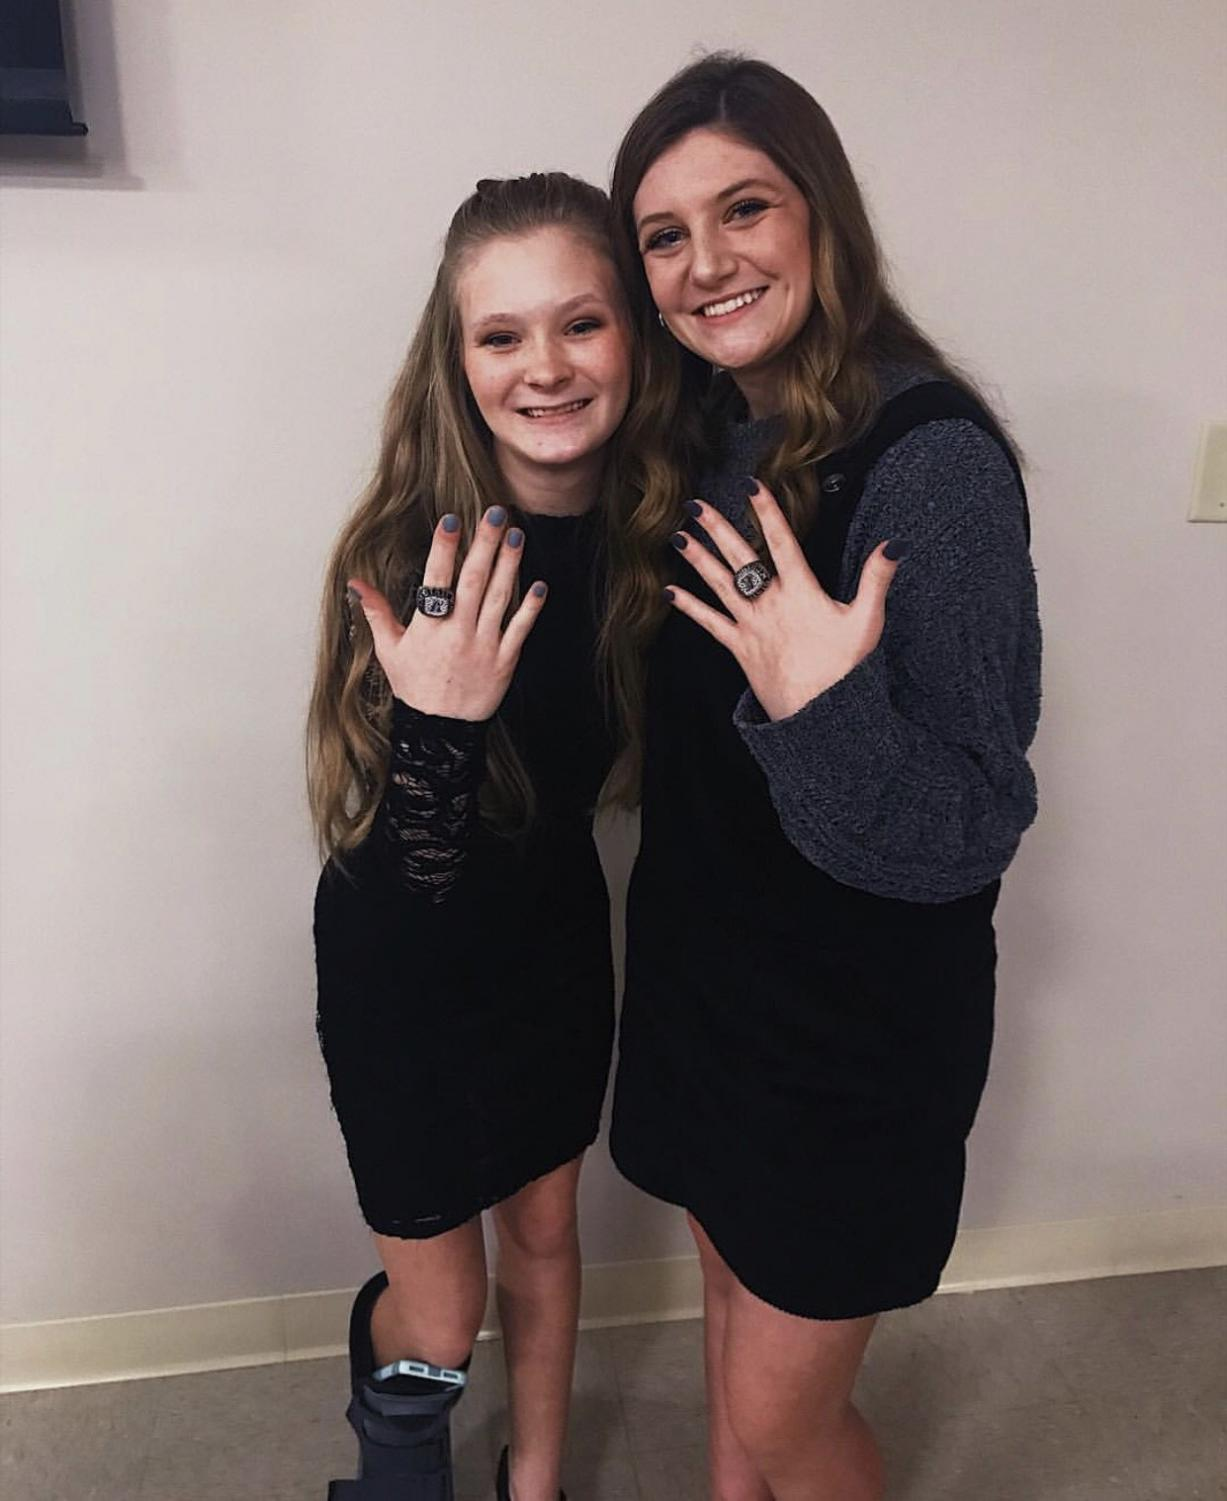 Annie Conley, freshman, and Logan Lively, sophomore, show off their bling they received on February 7, 2019. Lively said,